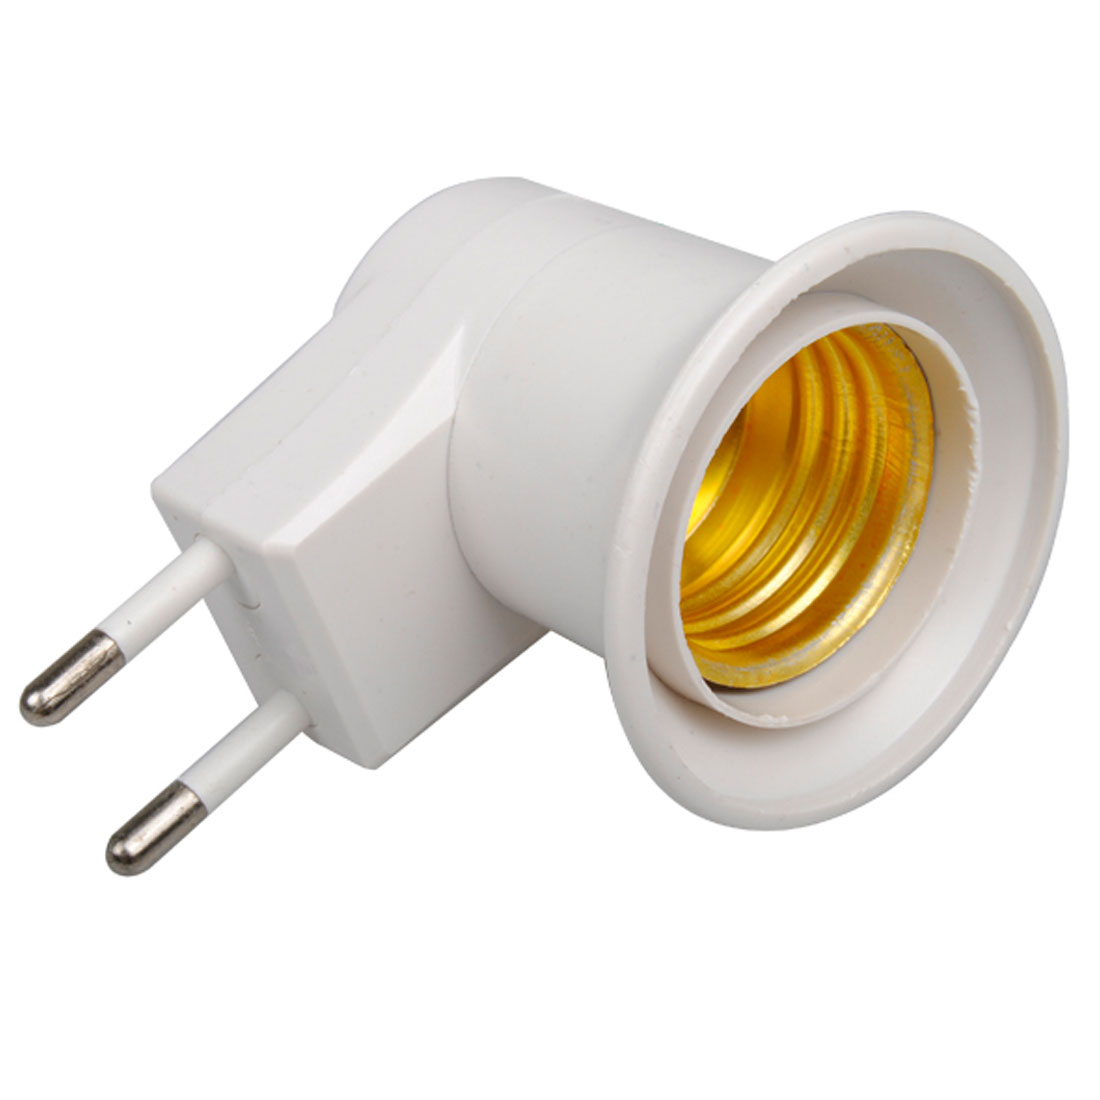 E27 Base Socket EU Plug Night Light With Power On-off Control Switch